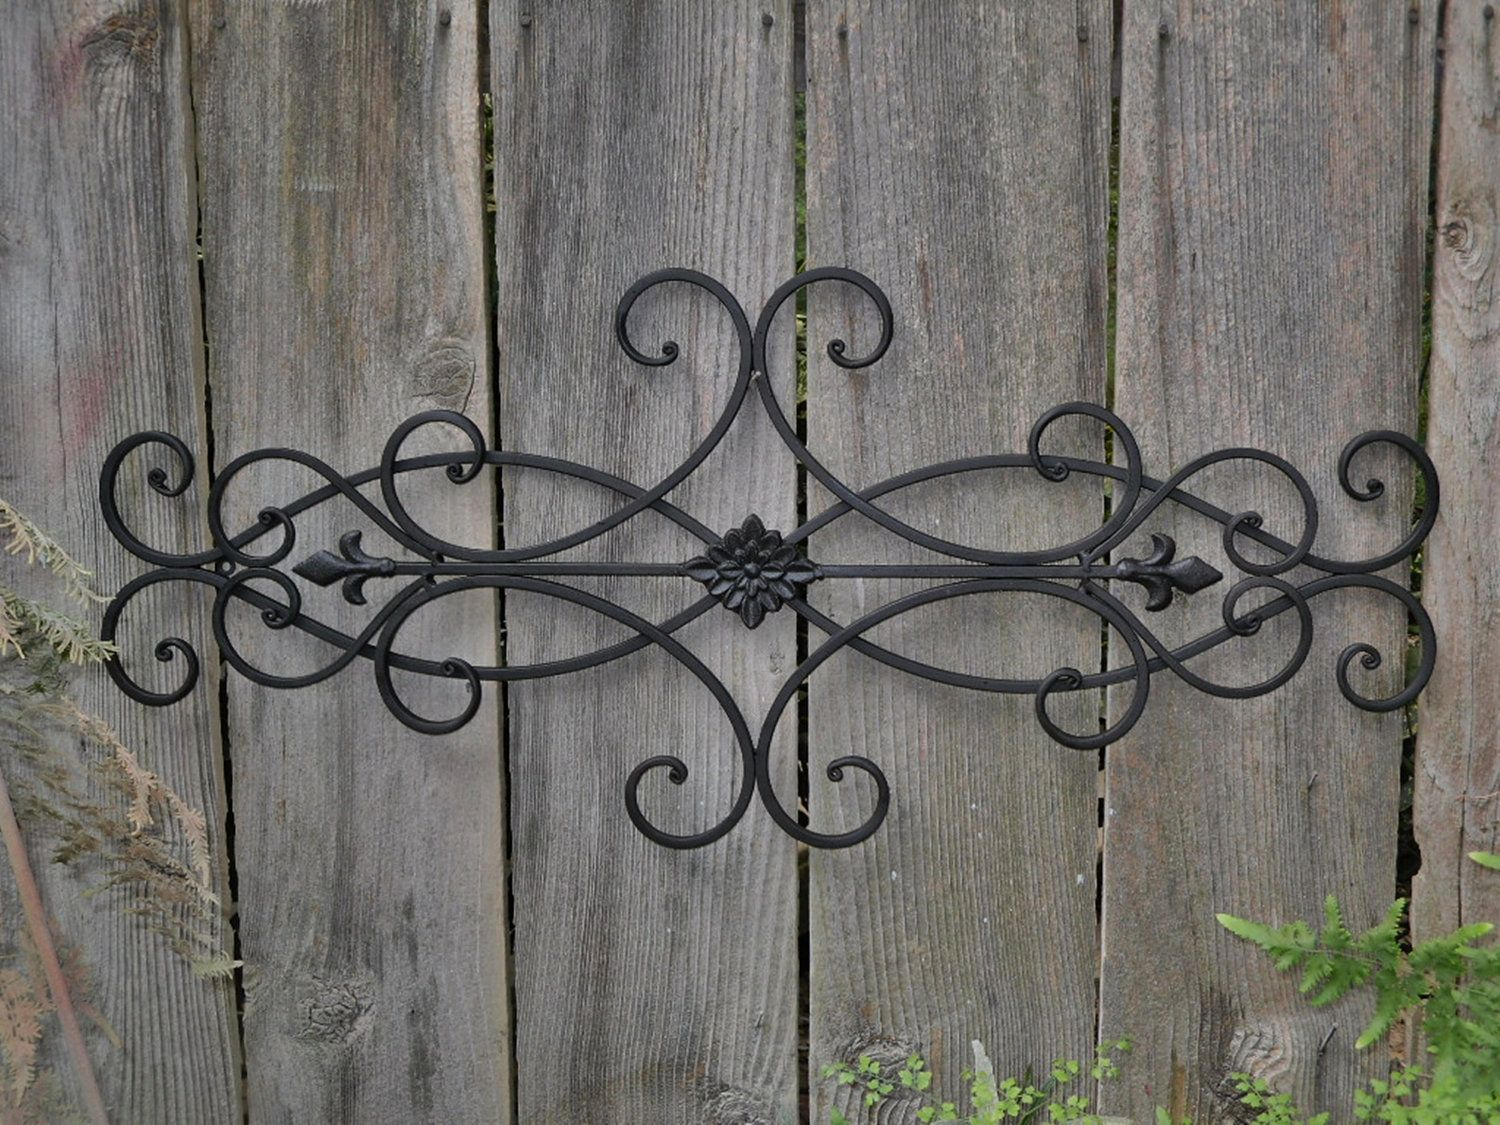 Wrought Iron Wall Deco / Fleur de Lis / Shabby Chic Decor / Bedroom Wall  Decor / Kitchen Decor - Wrought Iron Wall Deco / Fleur De Lis / Shabby Chic Decor